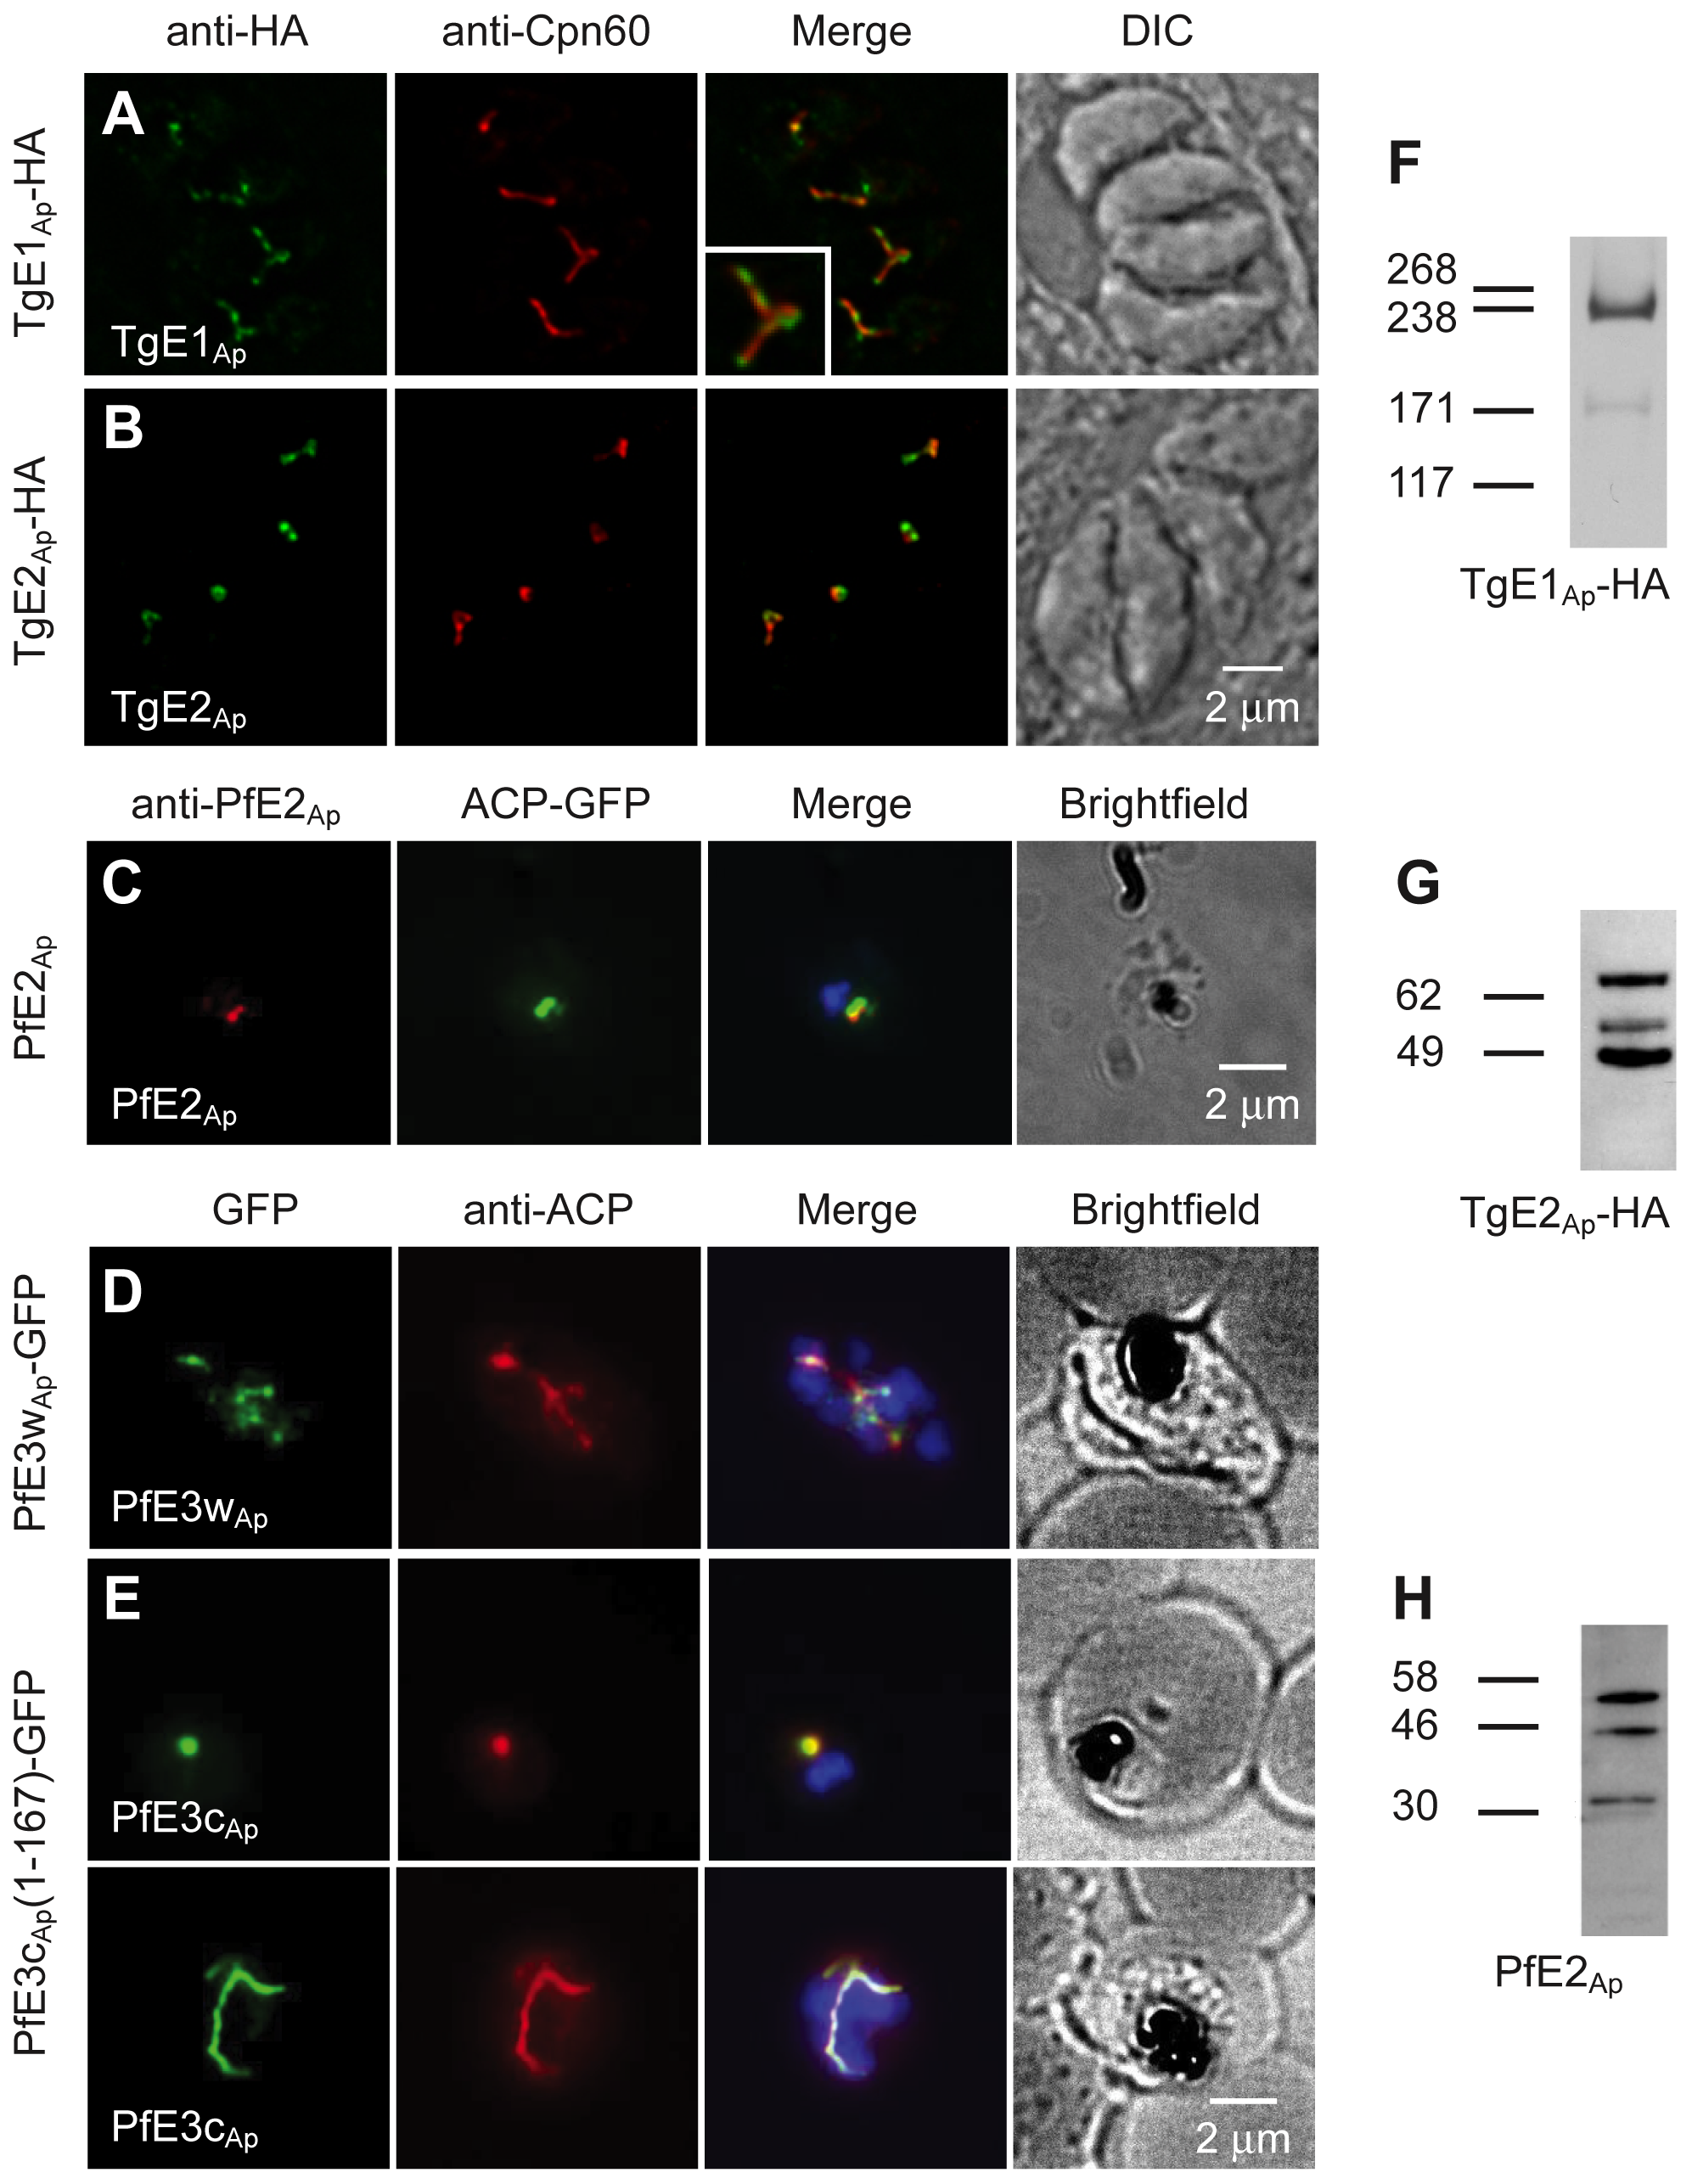 Ubiquitylation proteins localize to the apicoplast in <i>Plasmodium falciparum</i> and <i>Toxoplasma gondii</i>.